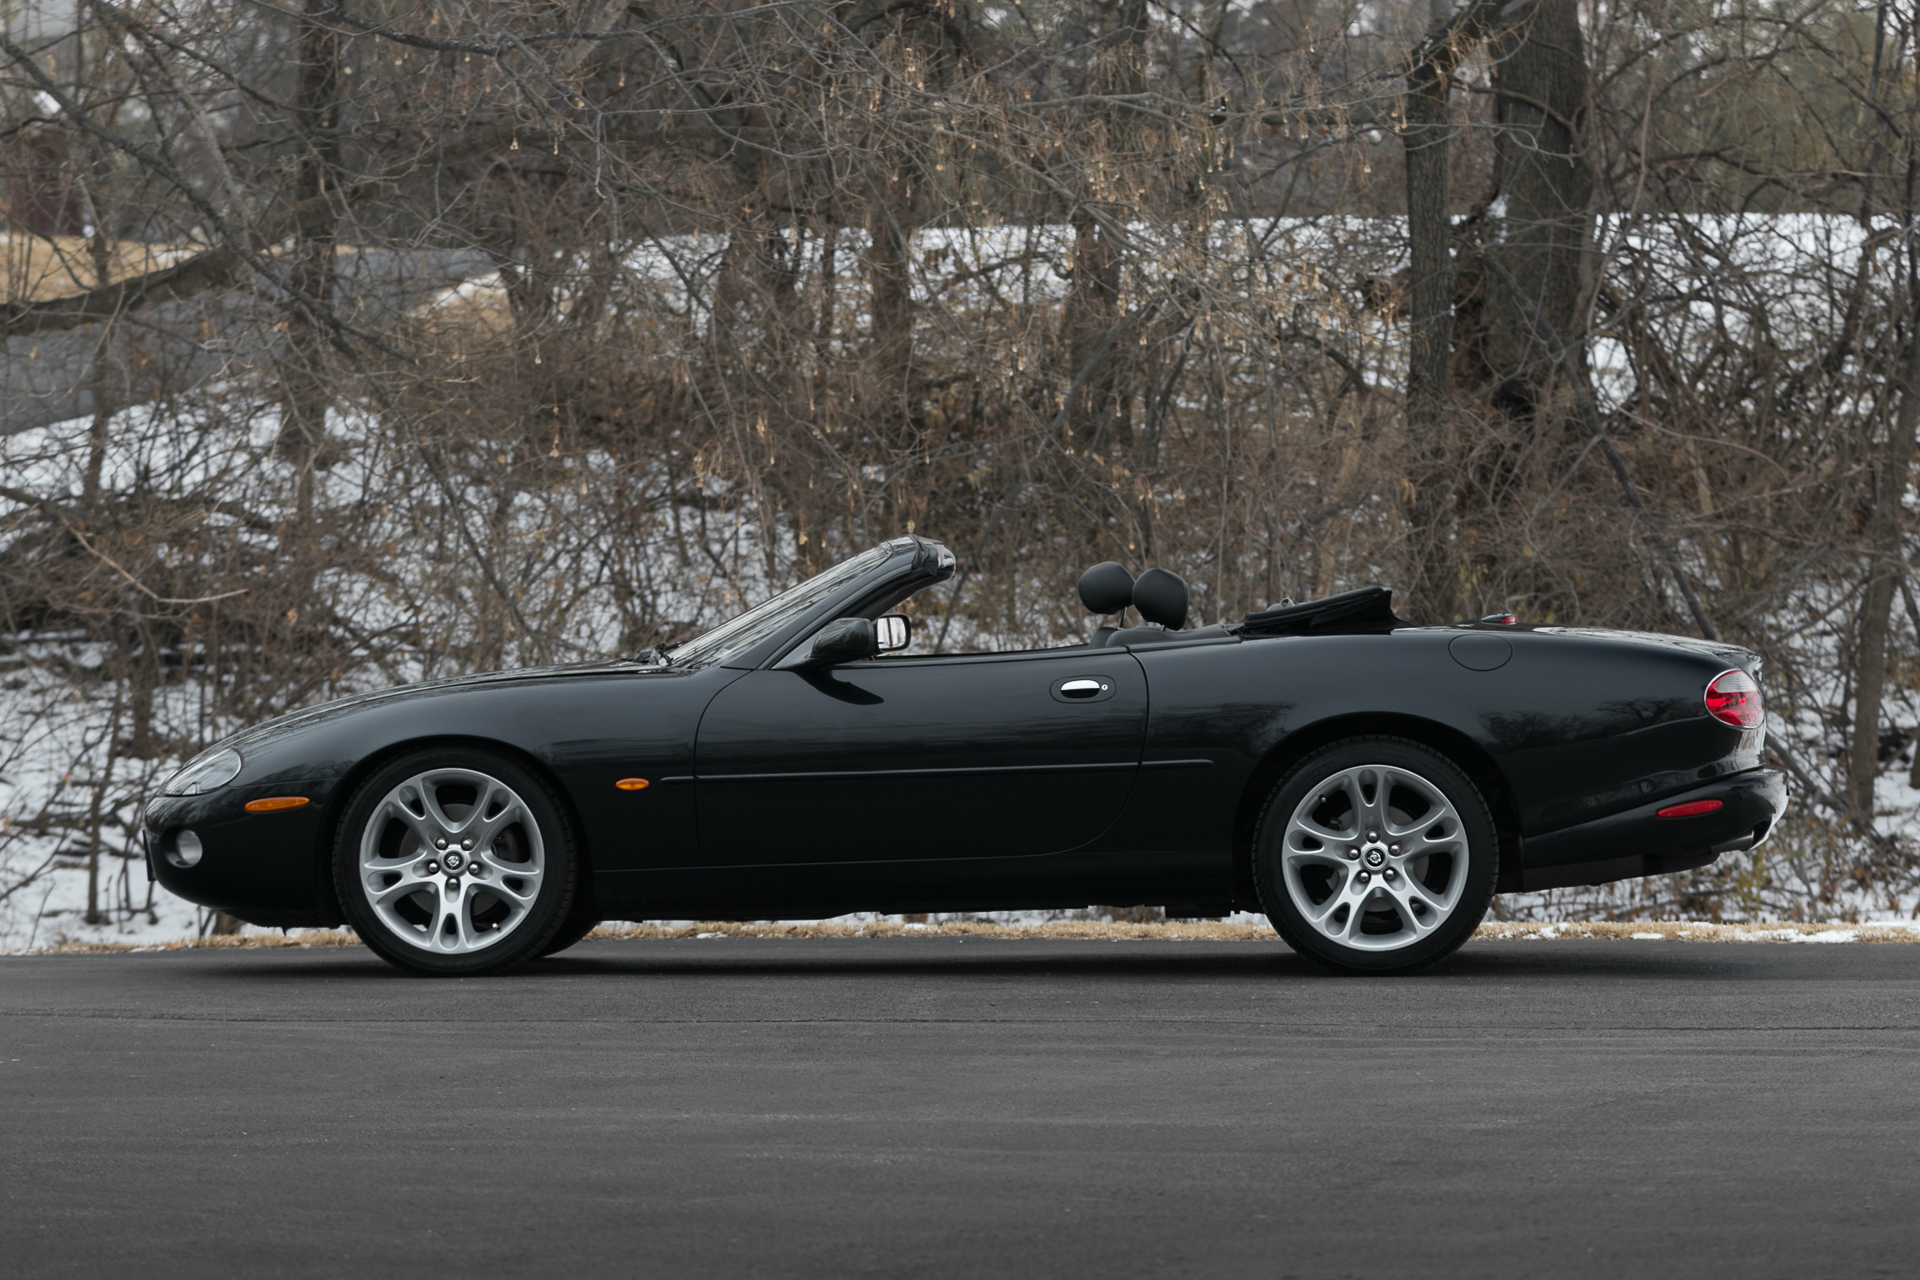 xkr c used l sale xk venice s jaguar main fl in for coupe htm